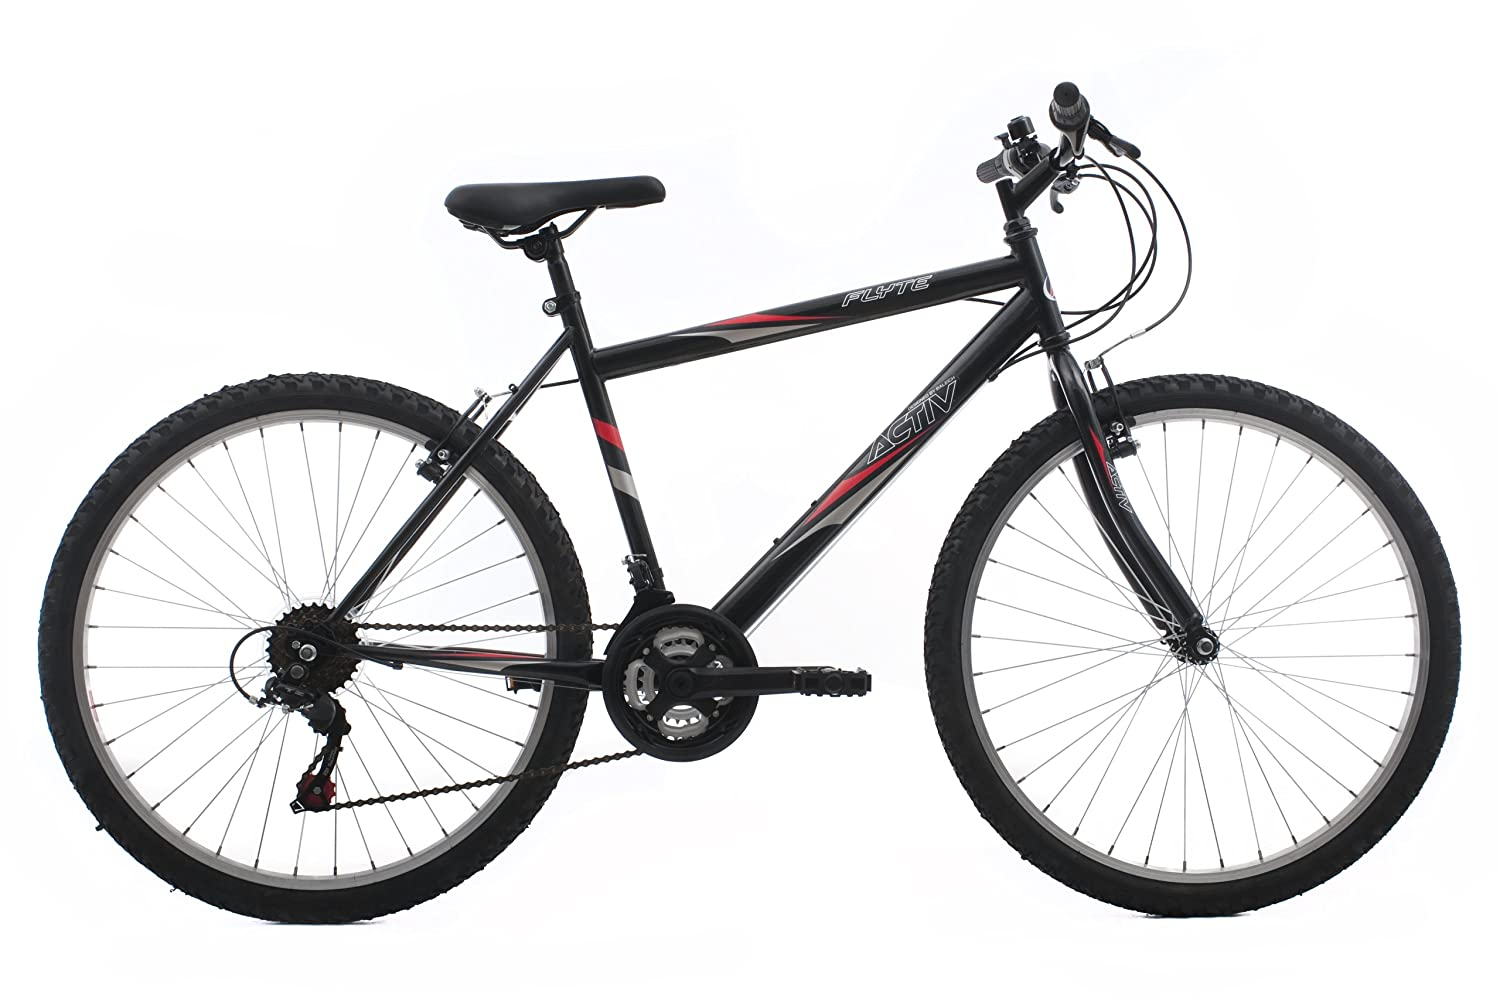 Activ By Raleigh Flyte Ii Men S Rigid Mountain Bike Black 19